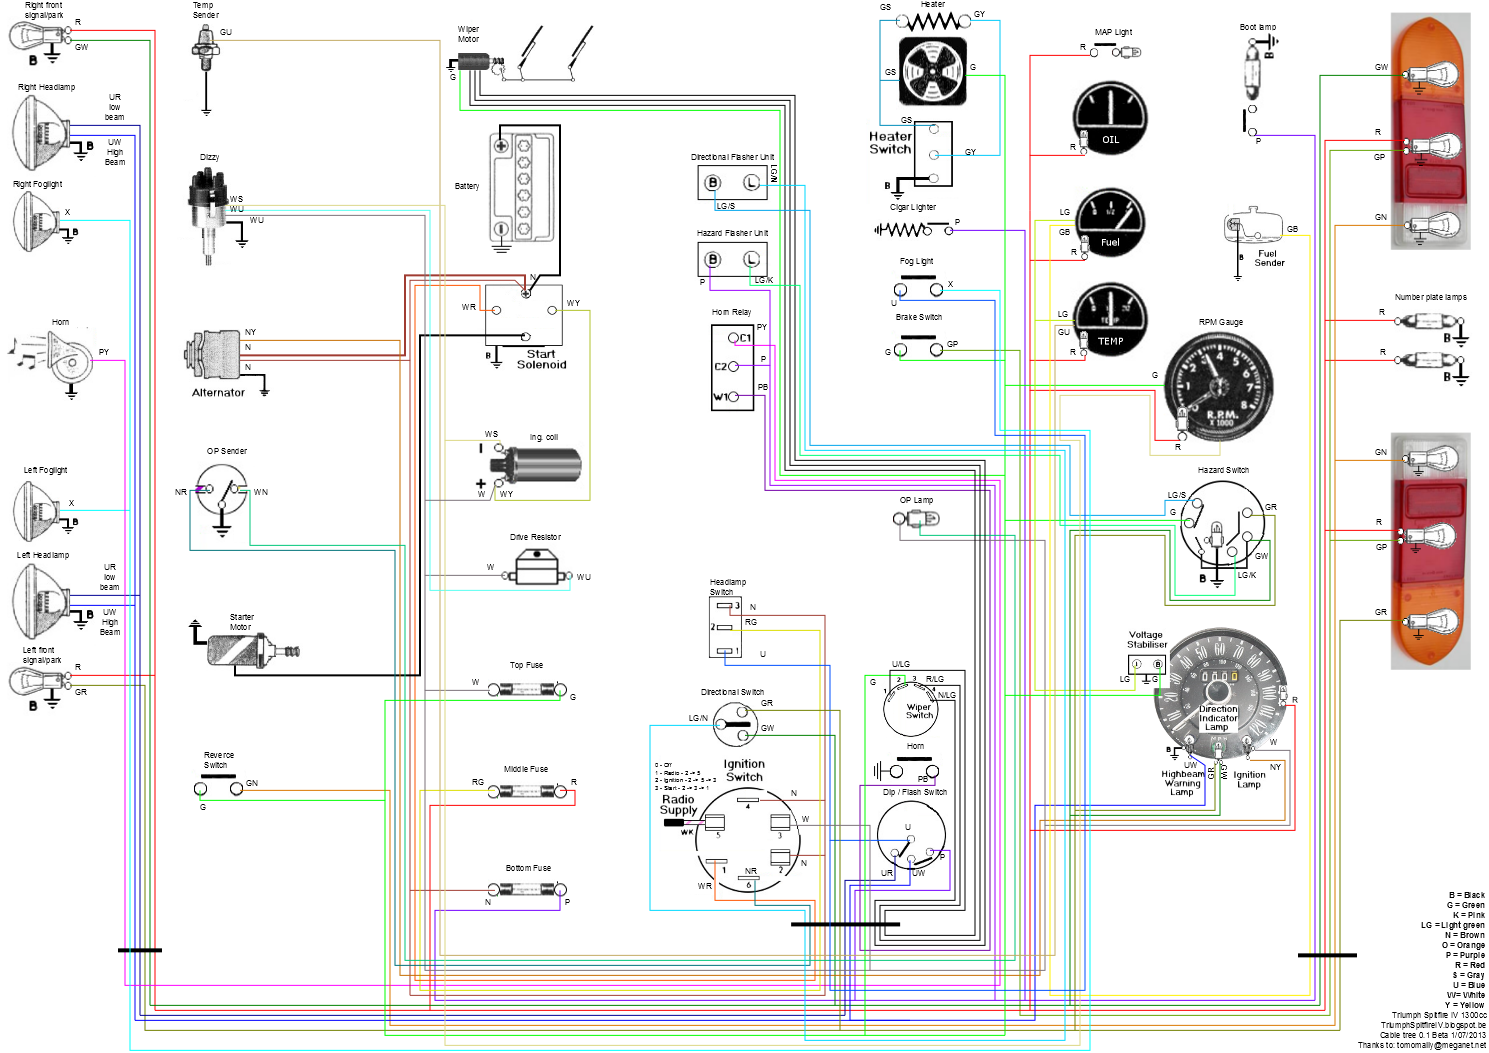 spitfire iv wiring diagram spitfire mkiv wiring diagram how to library the triumph experience triumph spitfire 1500 wiring diagram at webbmarketing.co